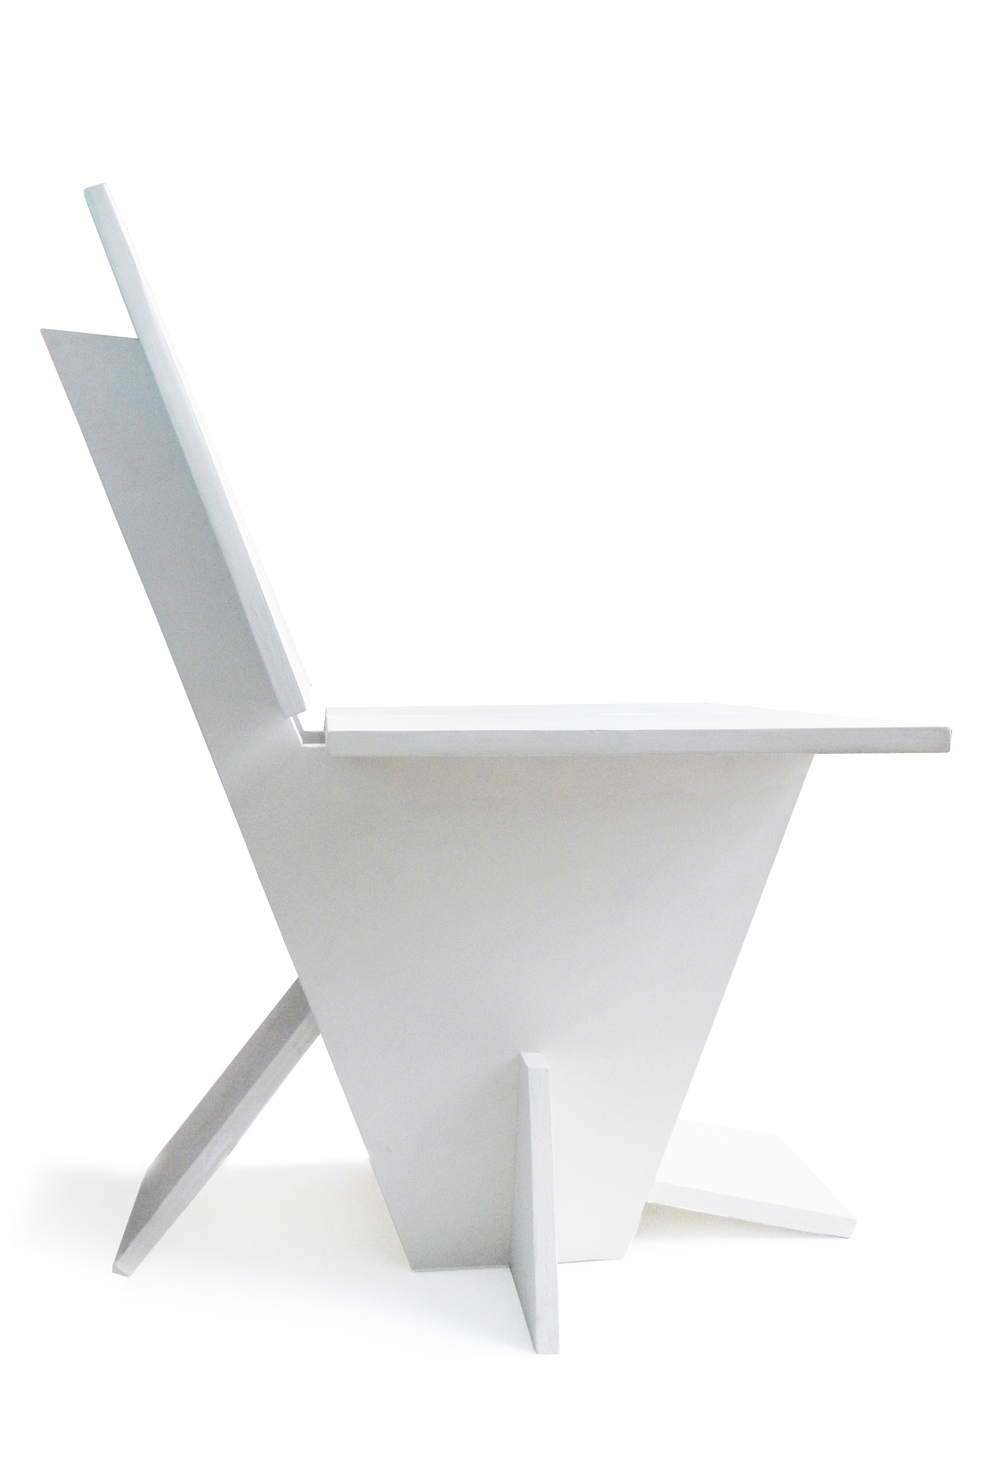 Glick_Ryan_Dining Chair 1_©